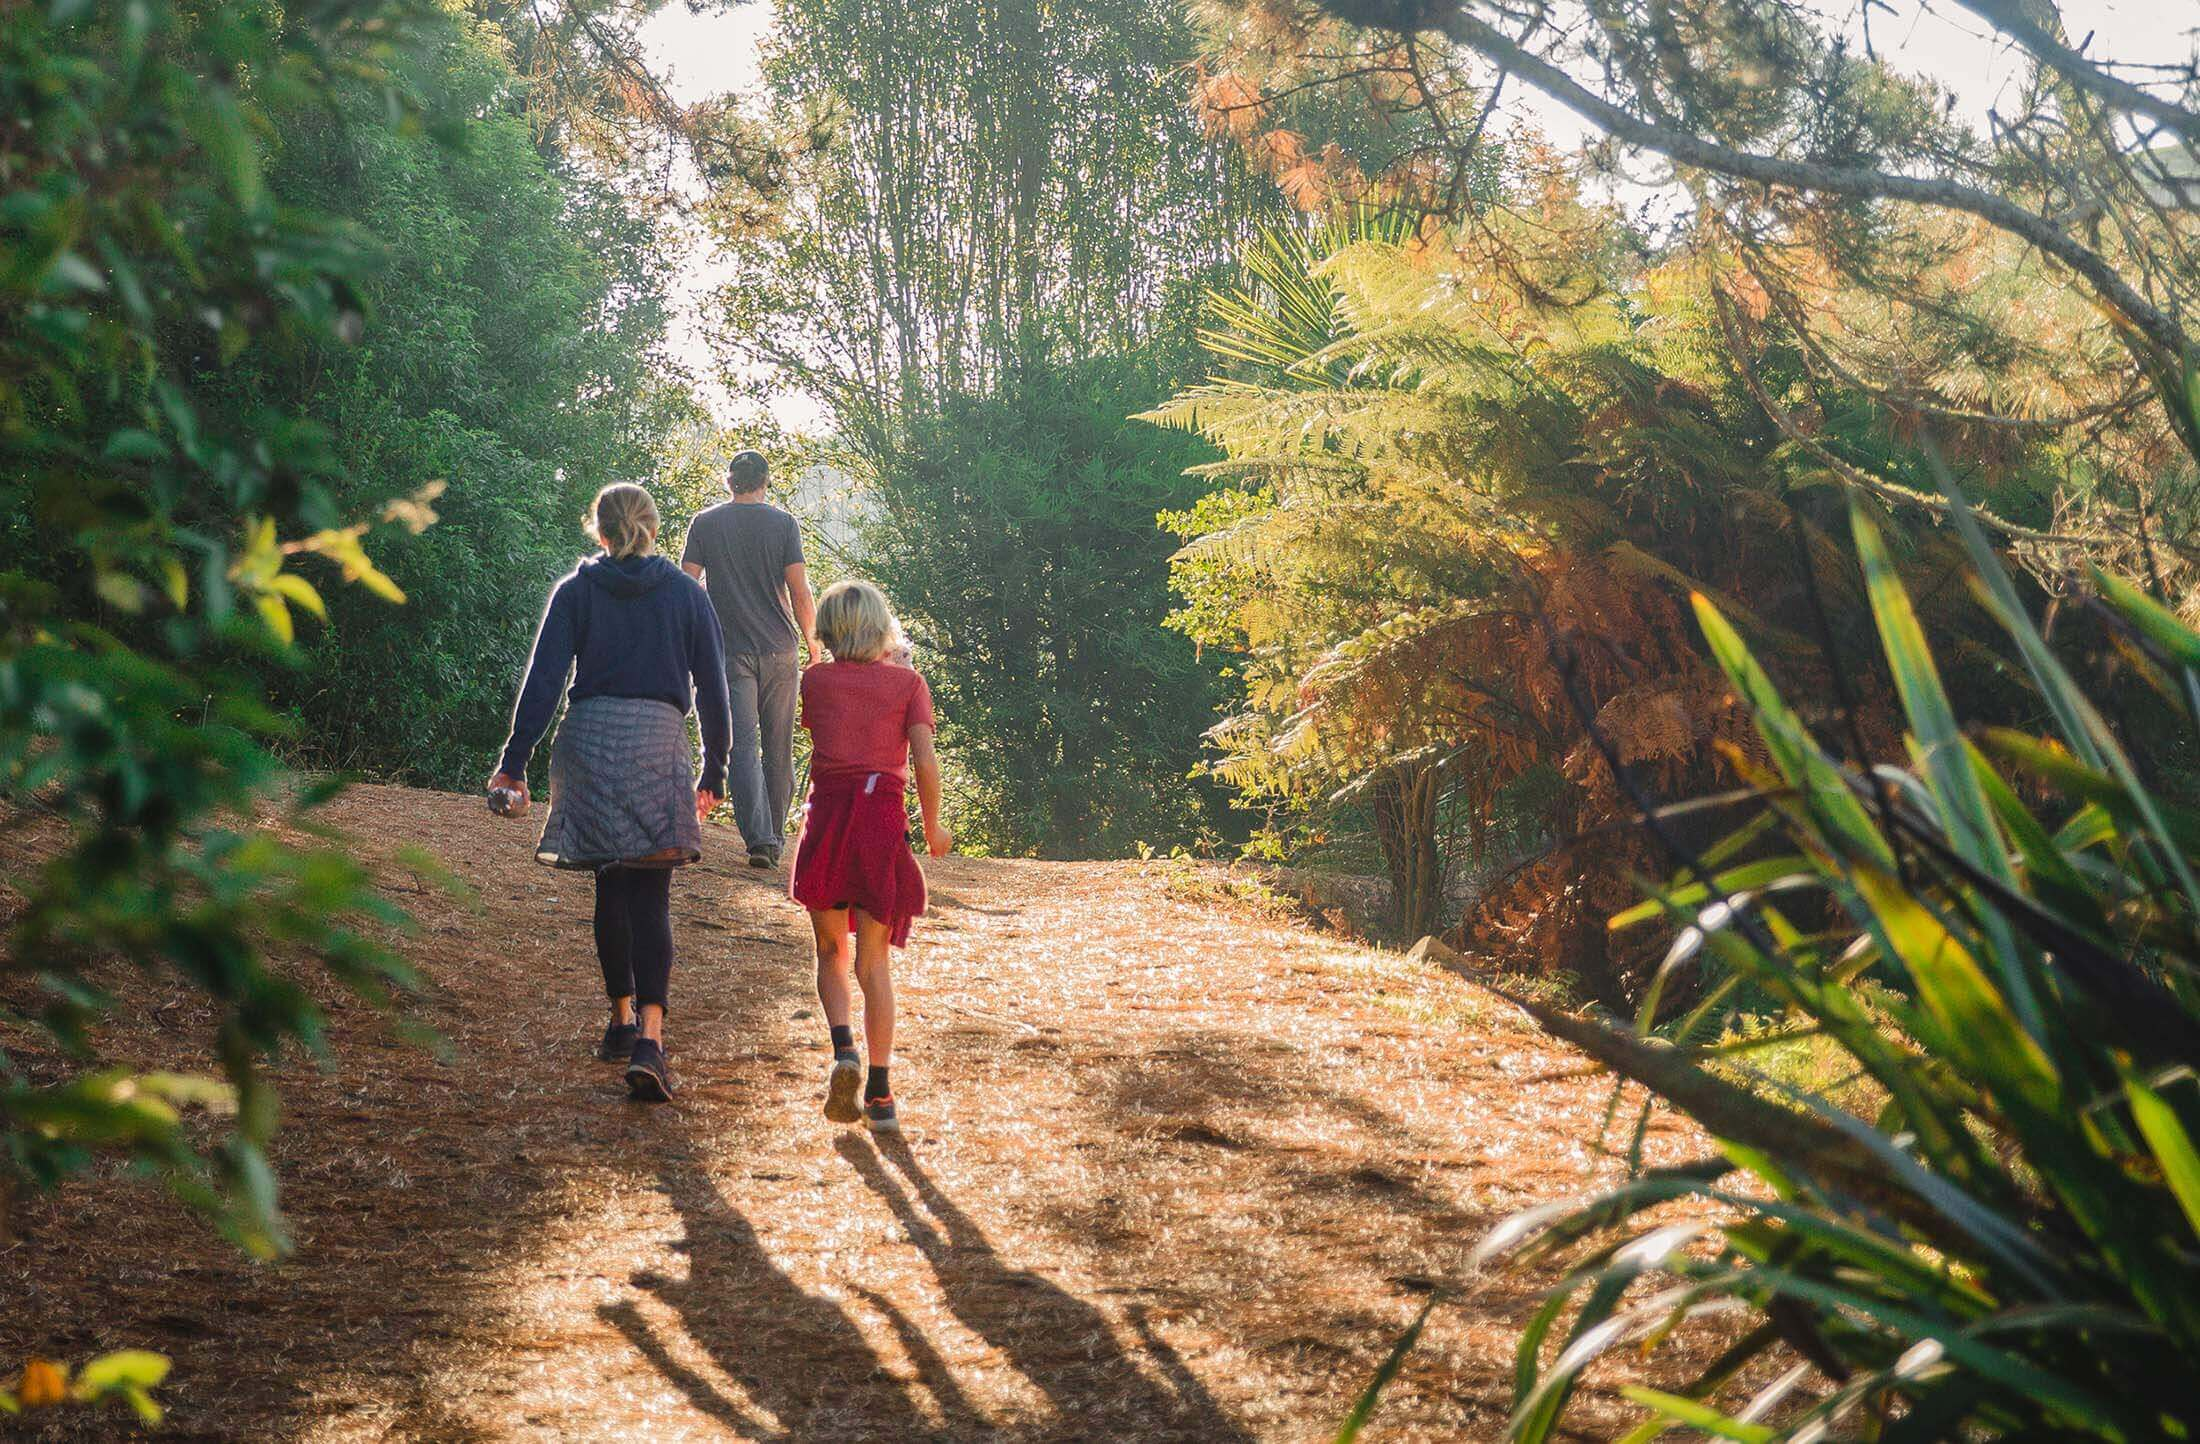 Putaruru residents enjoy the outdoor lifestyle in one of New Zealand's most affordable towns.